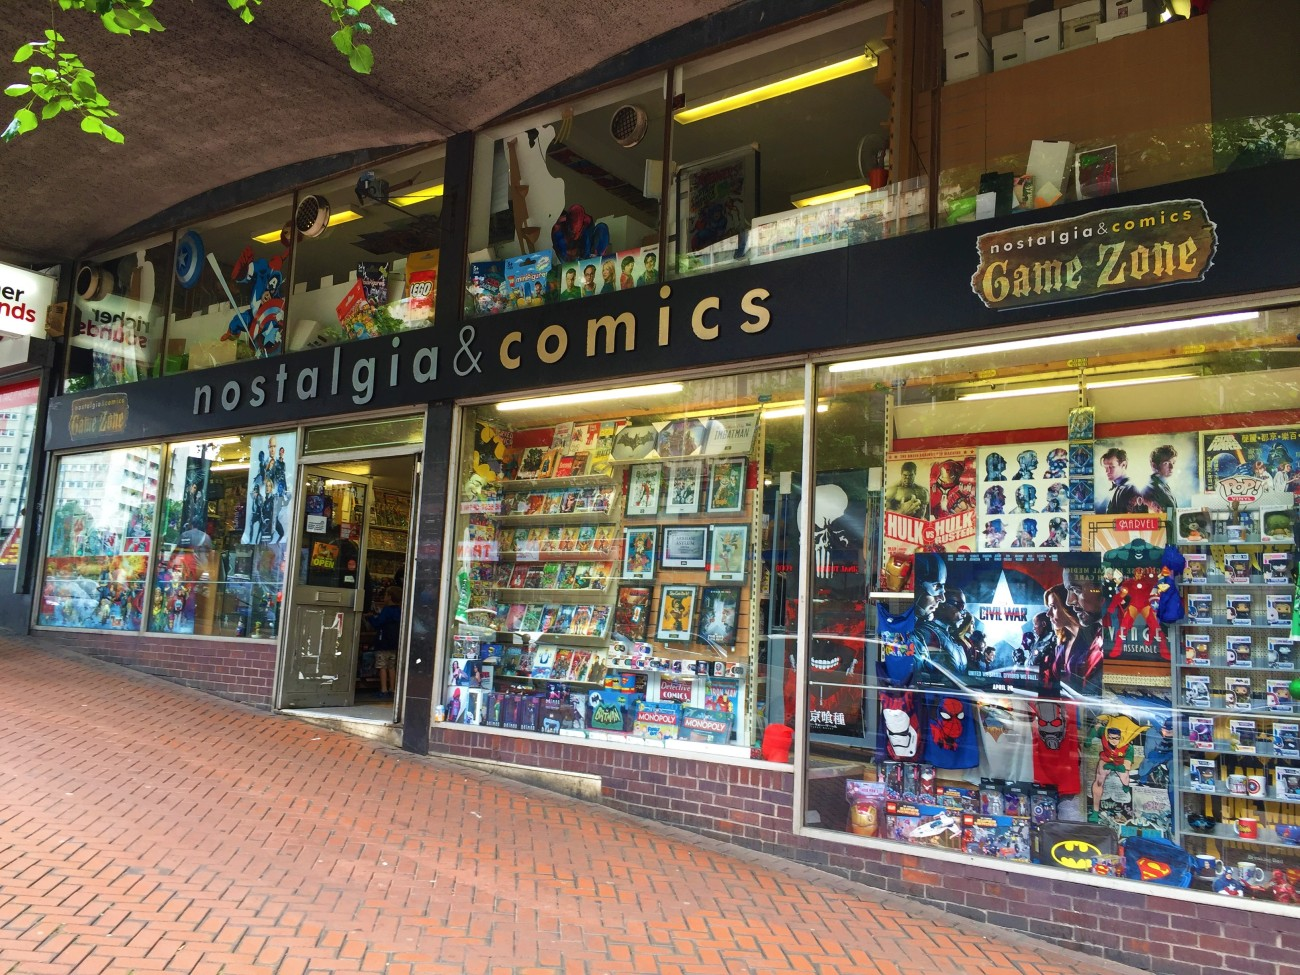 Nostalgia and Comics, Birmingham, UK